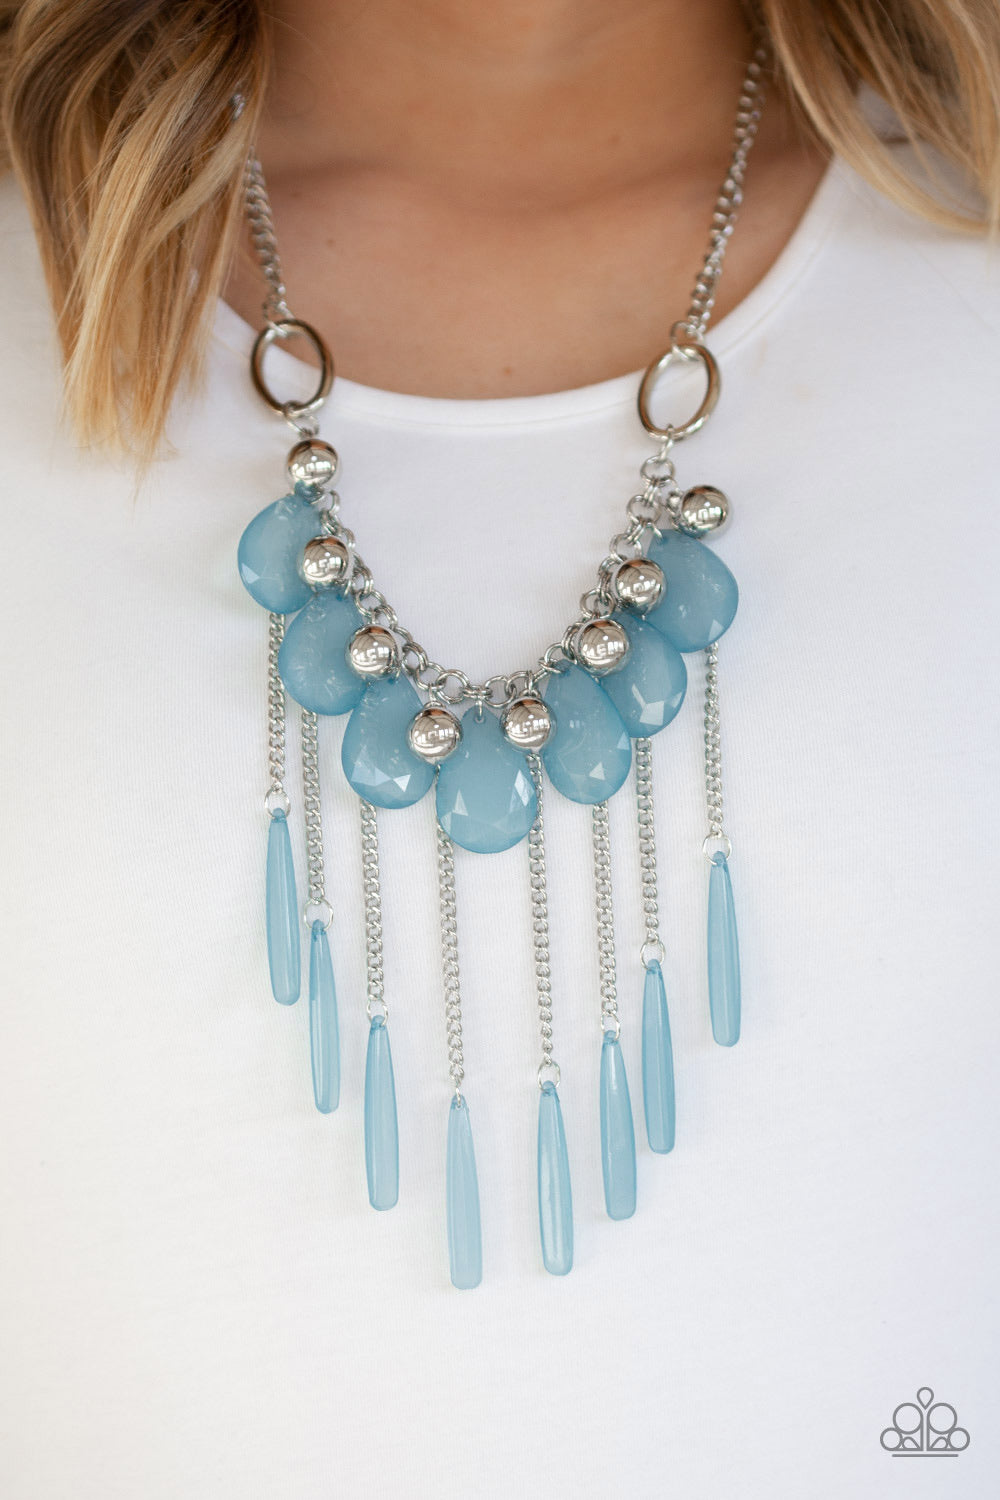 Paparazzi Jewelry Necklace Roaring Riviera - Blue